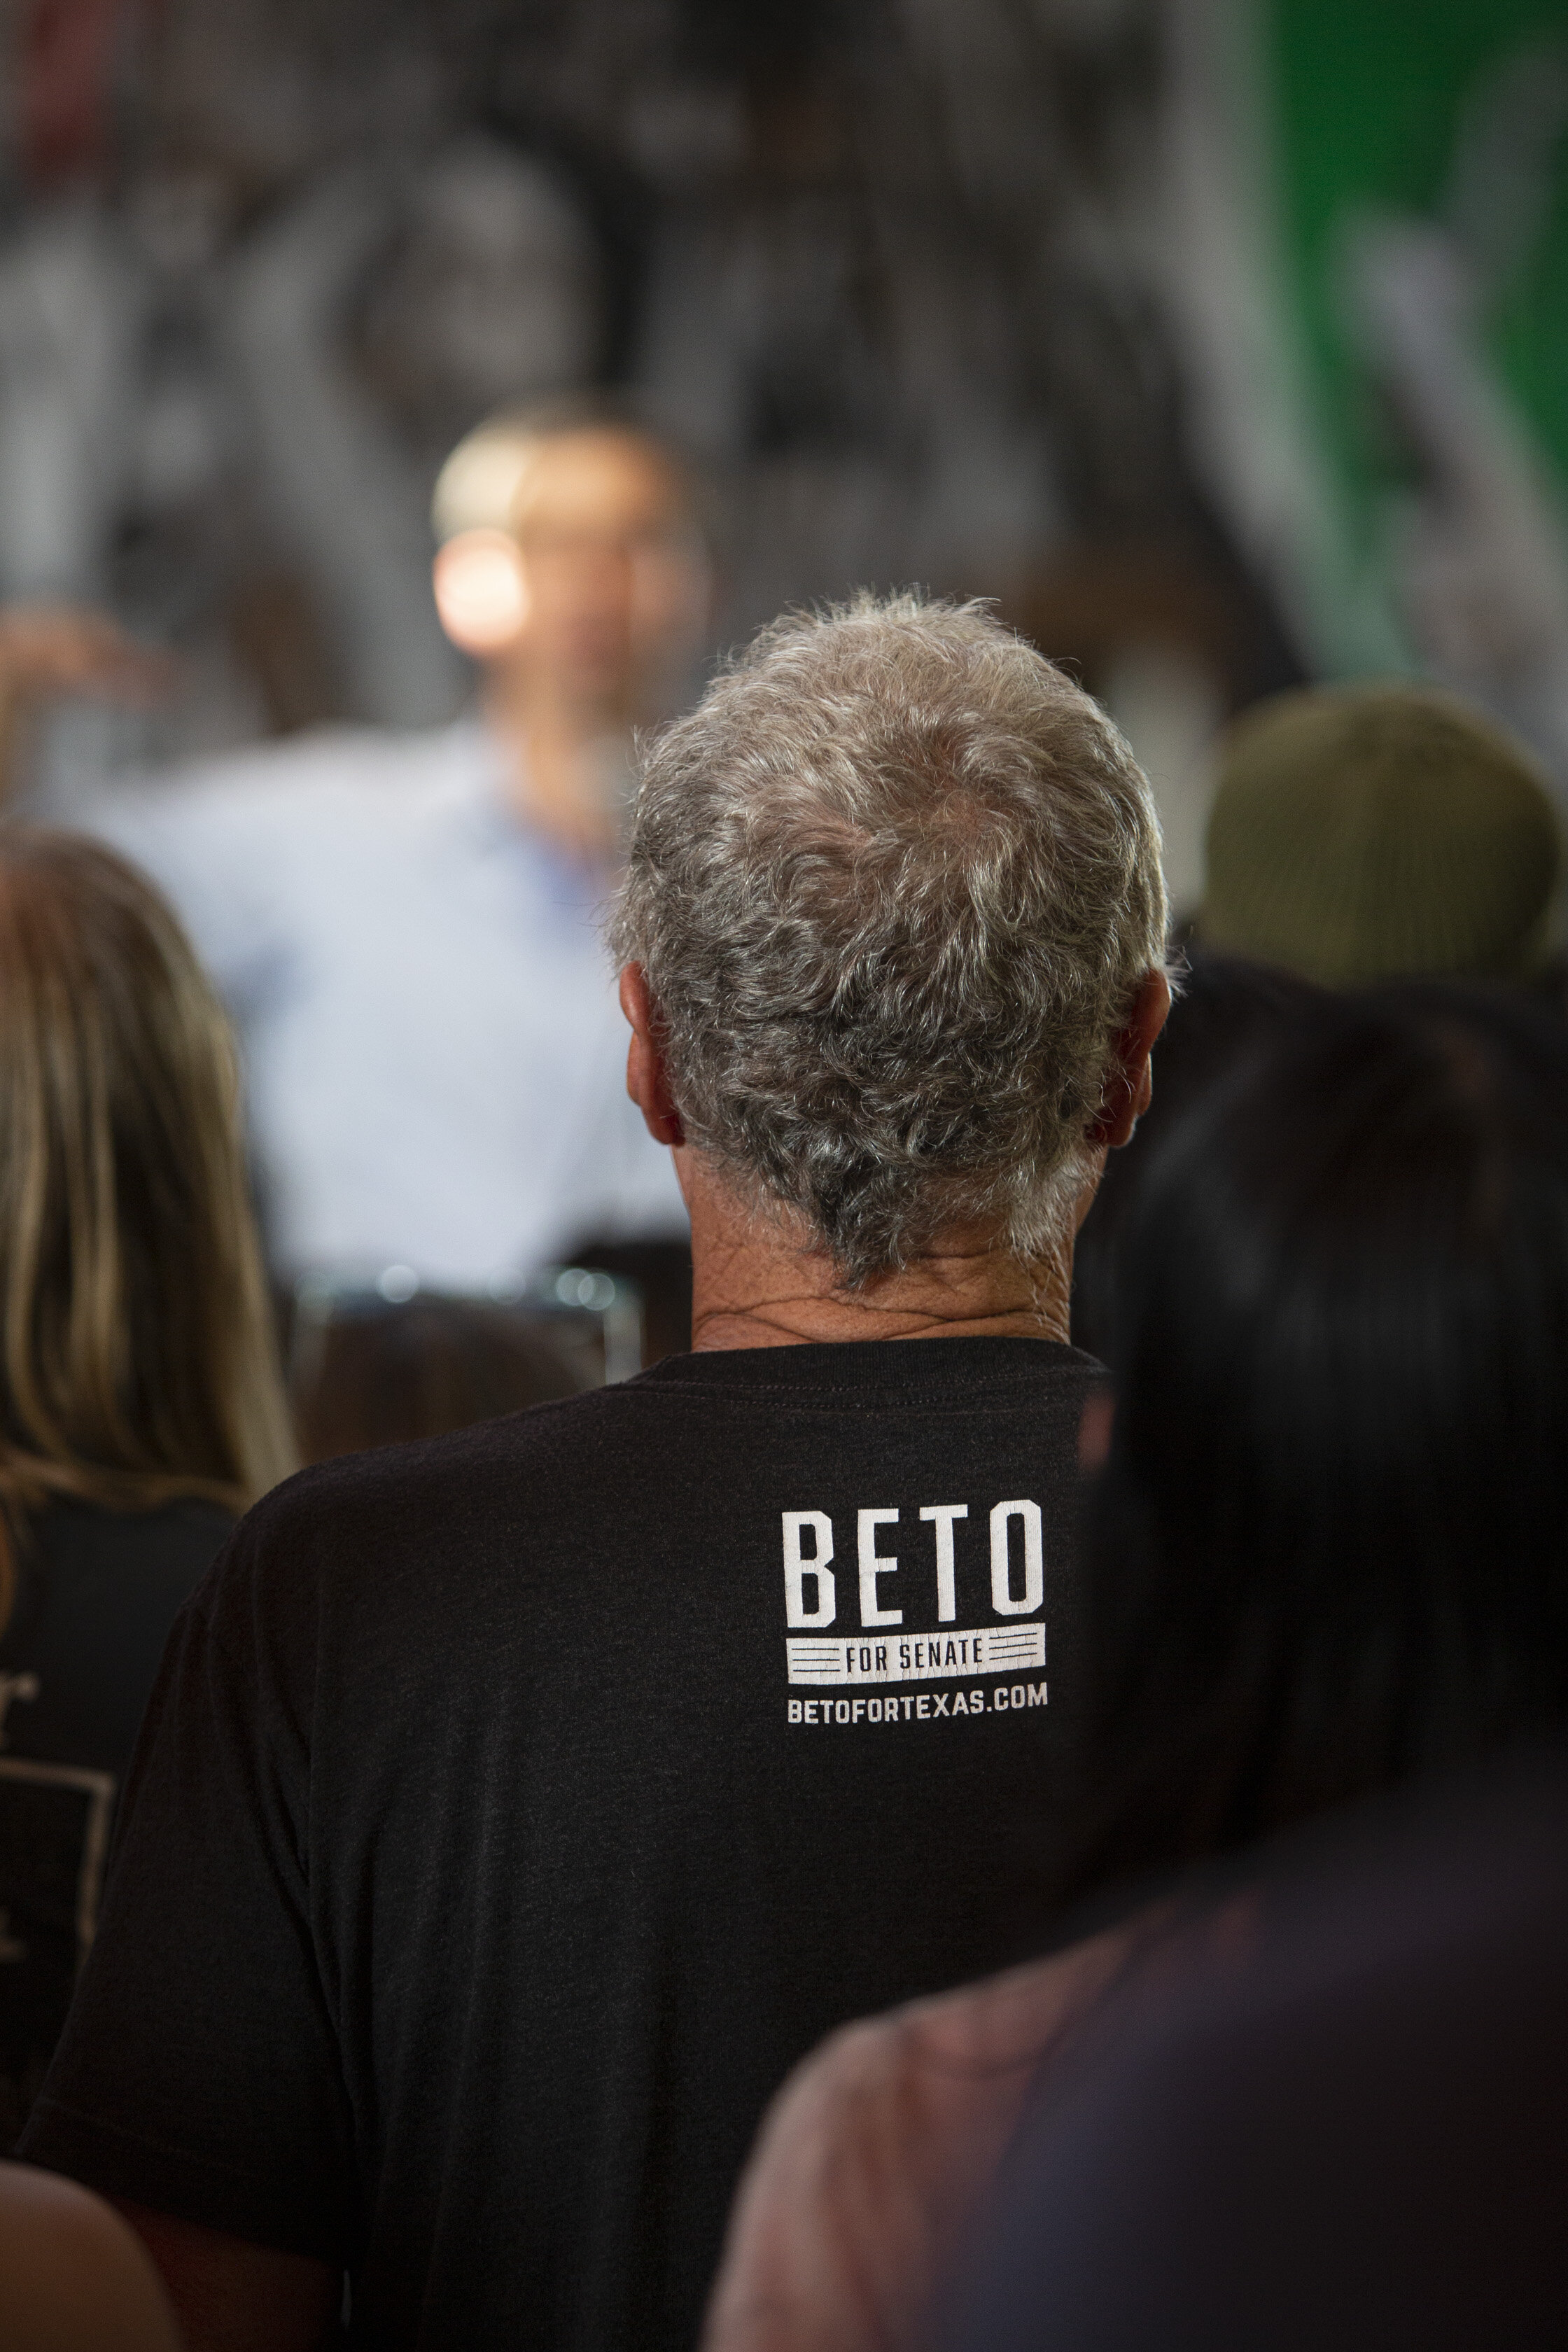 Democratic Presidential Candidate Beto O'Rourke's supporter, during a town hall event at Casa del Mexicano, on Saturday, October 5, in Los Angeles, Calif. (Yasamin Jtehrani / The Corsair)